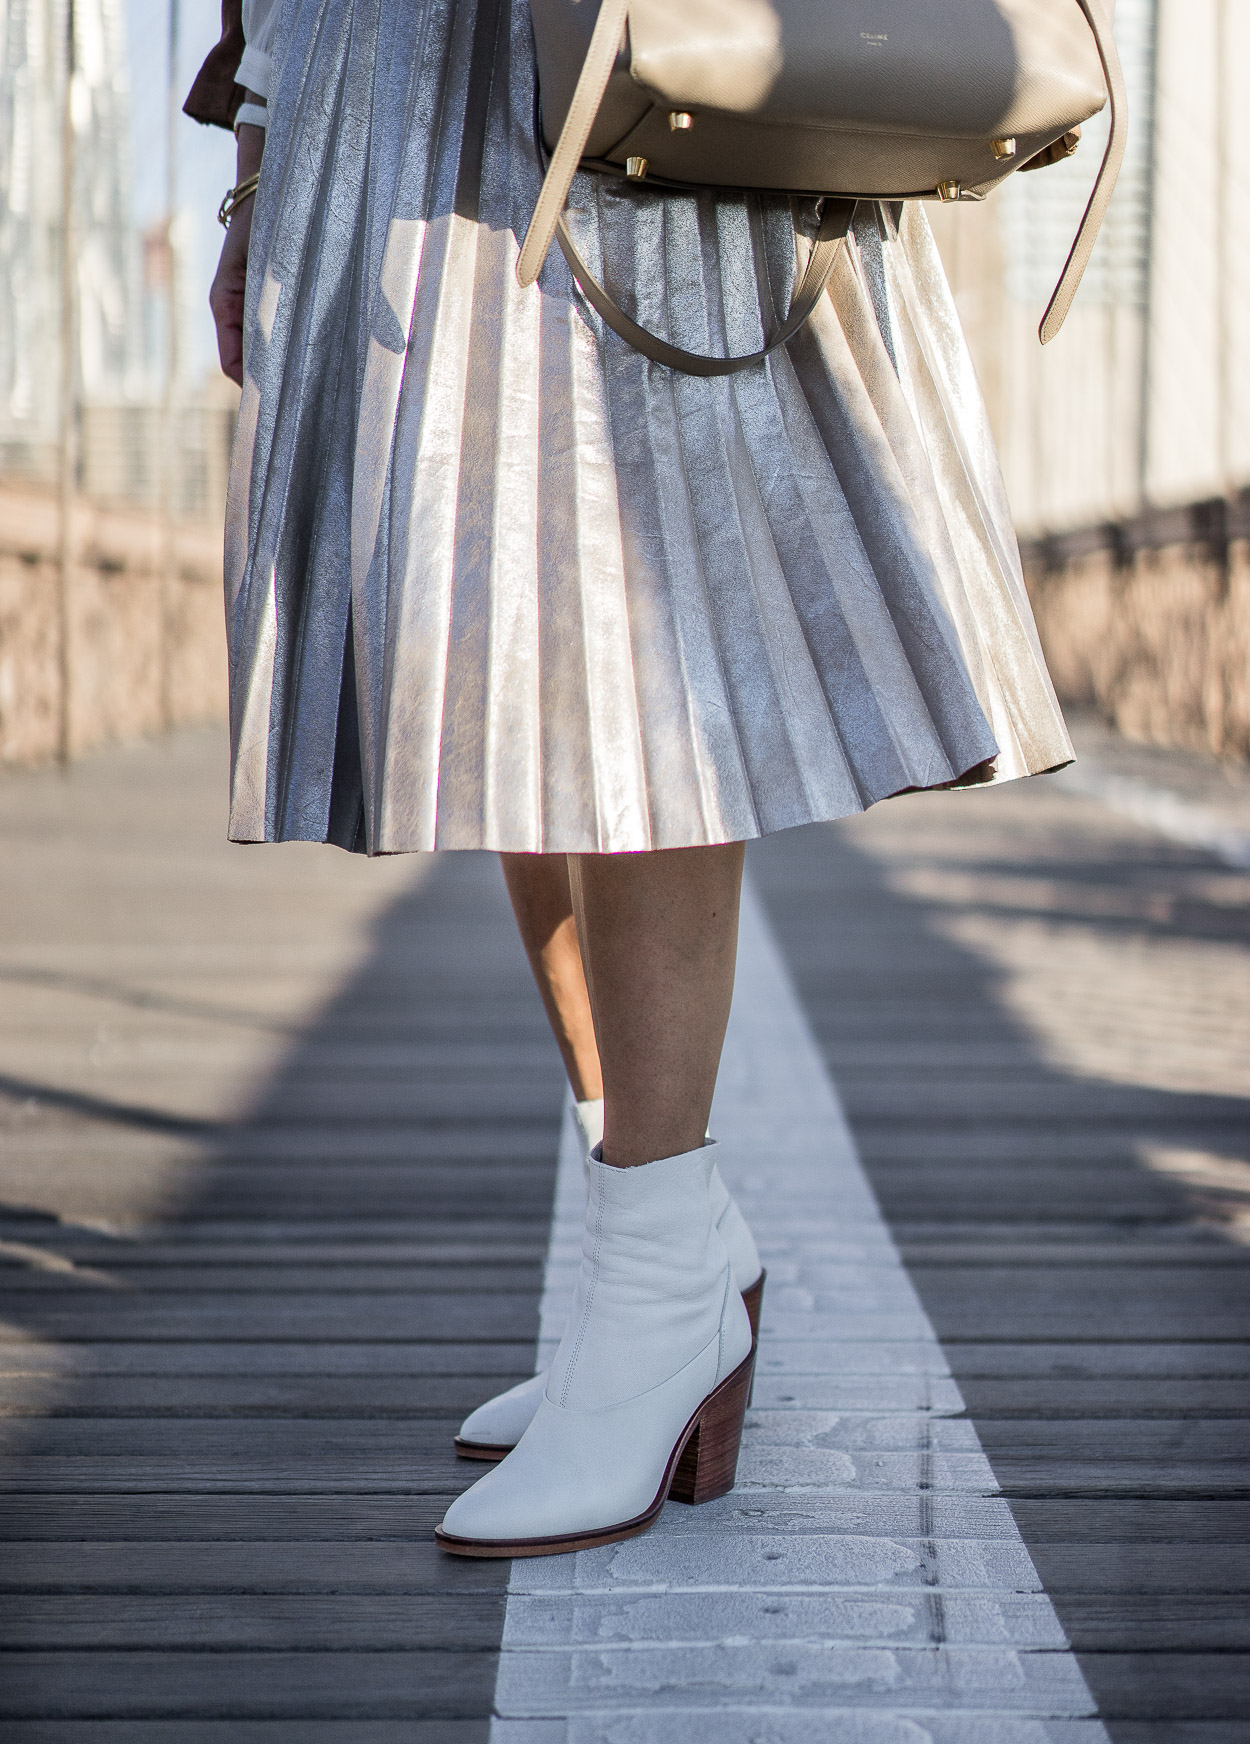 Pair your metallic pleated skirt with white sock booties from Topshop this Fall a la blogger Amanda from A Glam Lifestyle